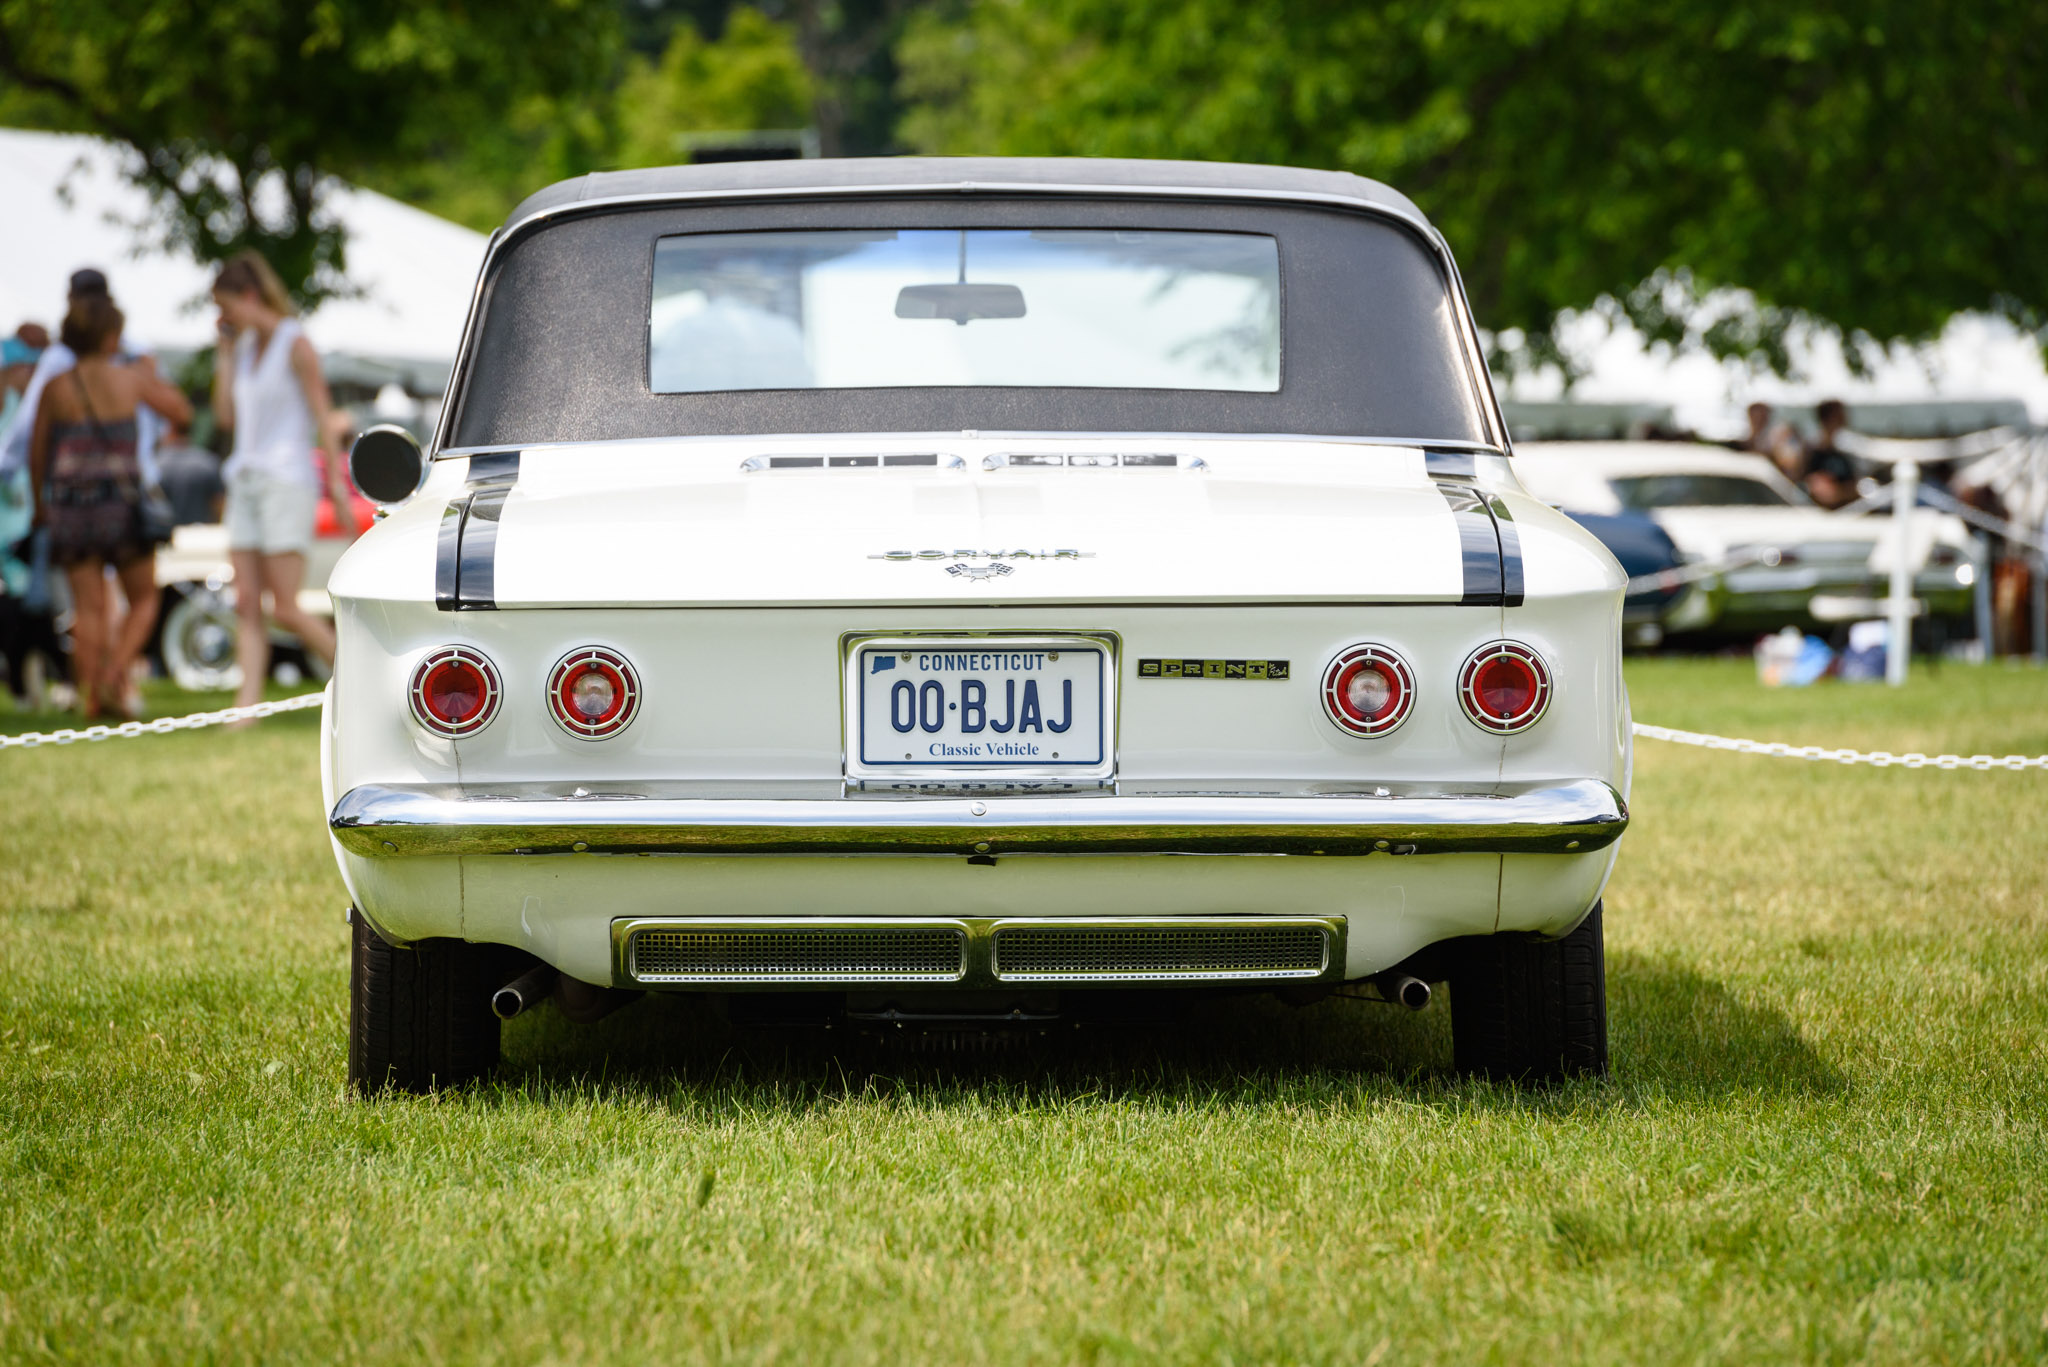 1962 Corvair Monza Fitch Sprint rear